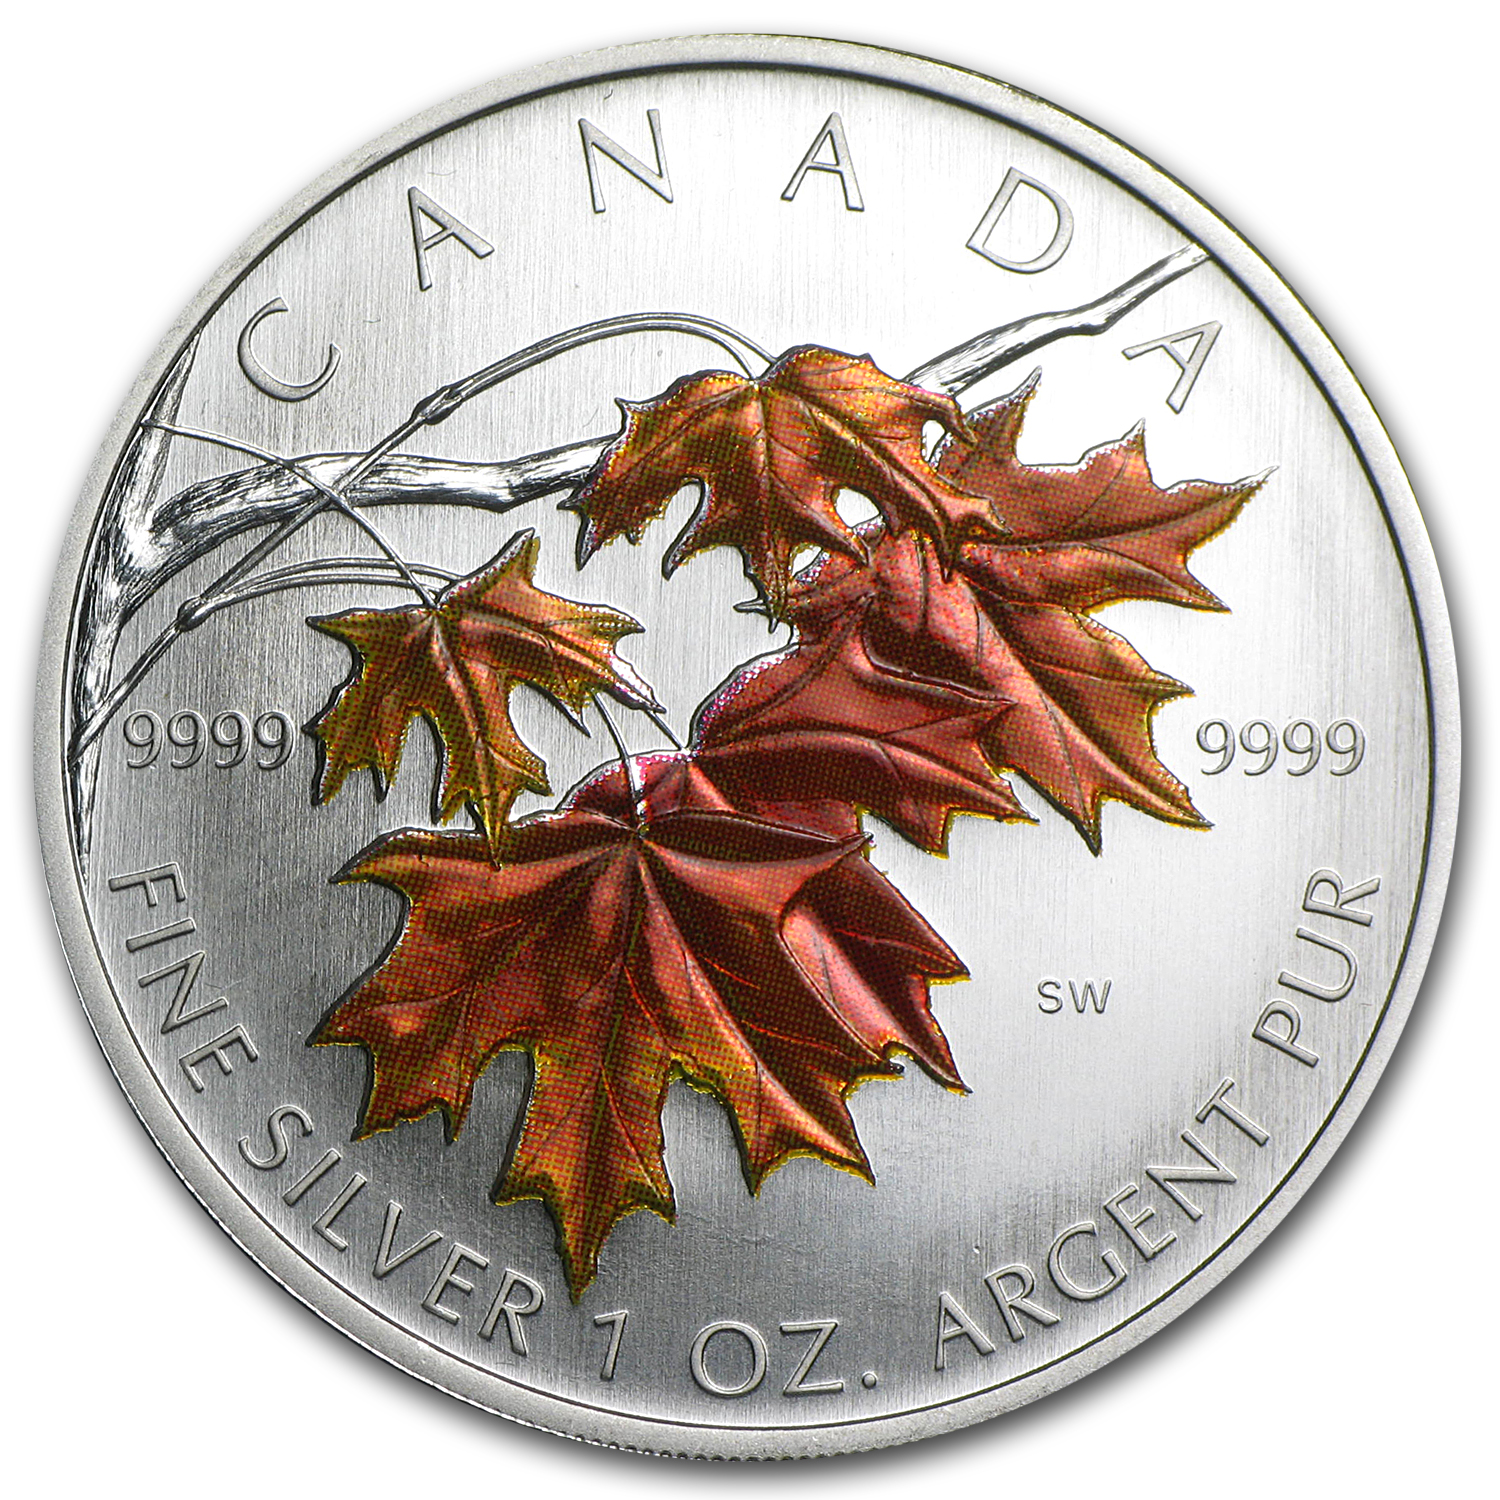 2007 1 oz Silver Canadian Maple Leaf - Coloured Sugar Maple